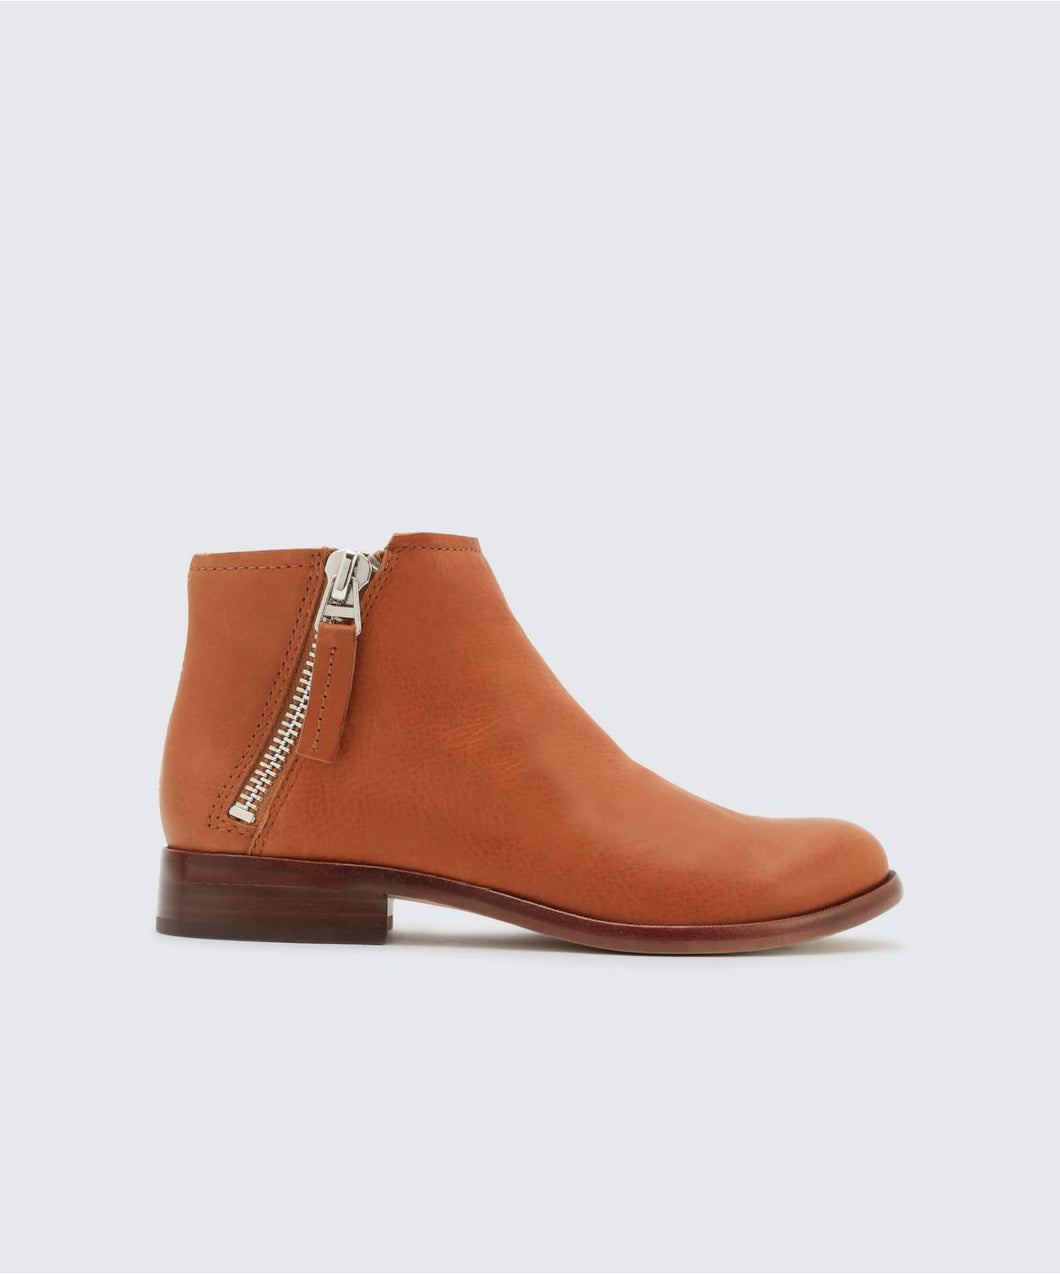 VESA BOOTIES BROWN -   Dolce Vita